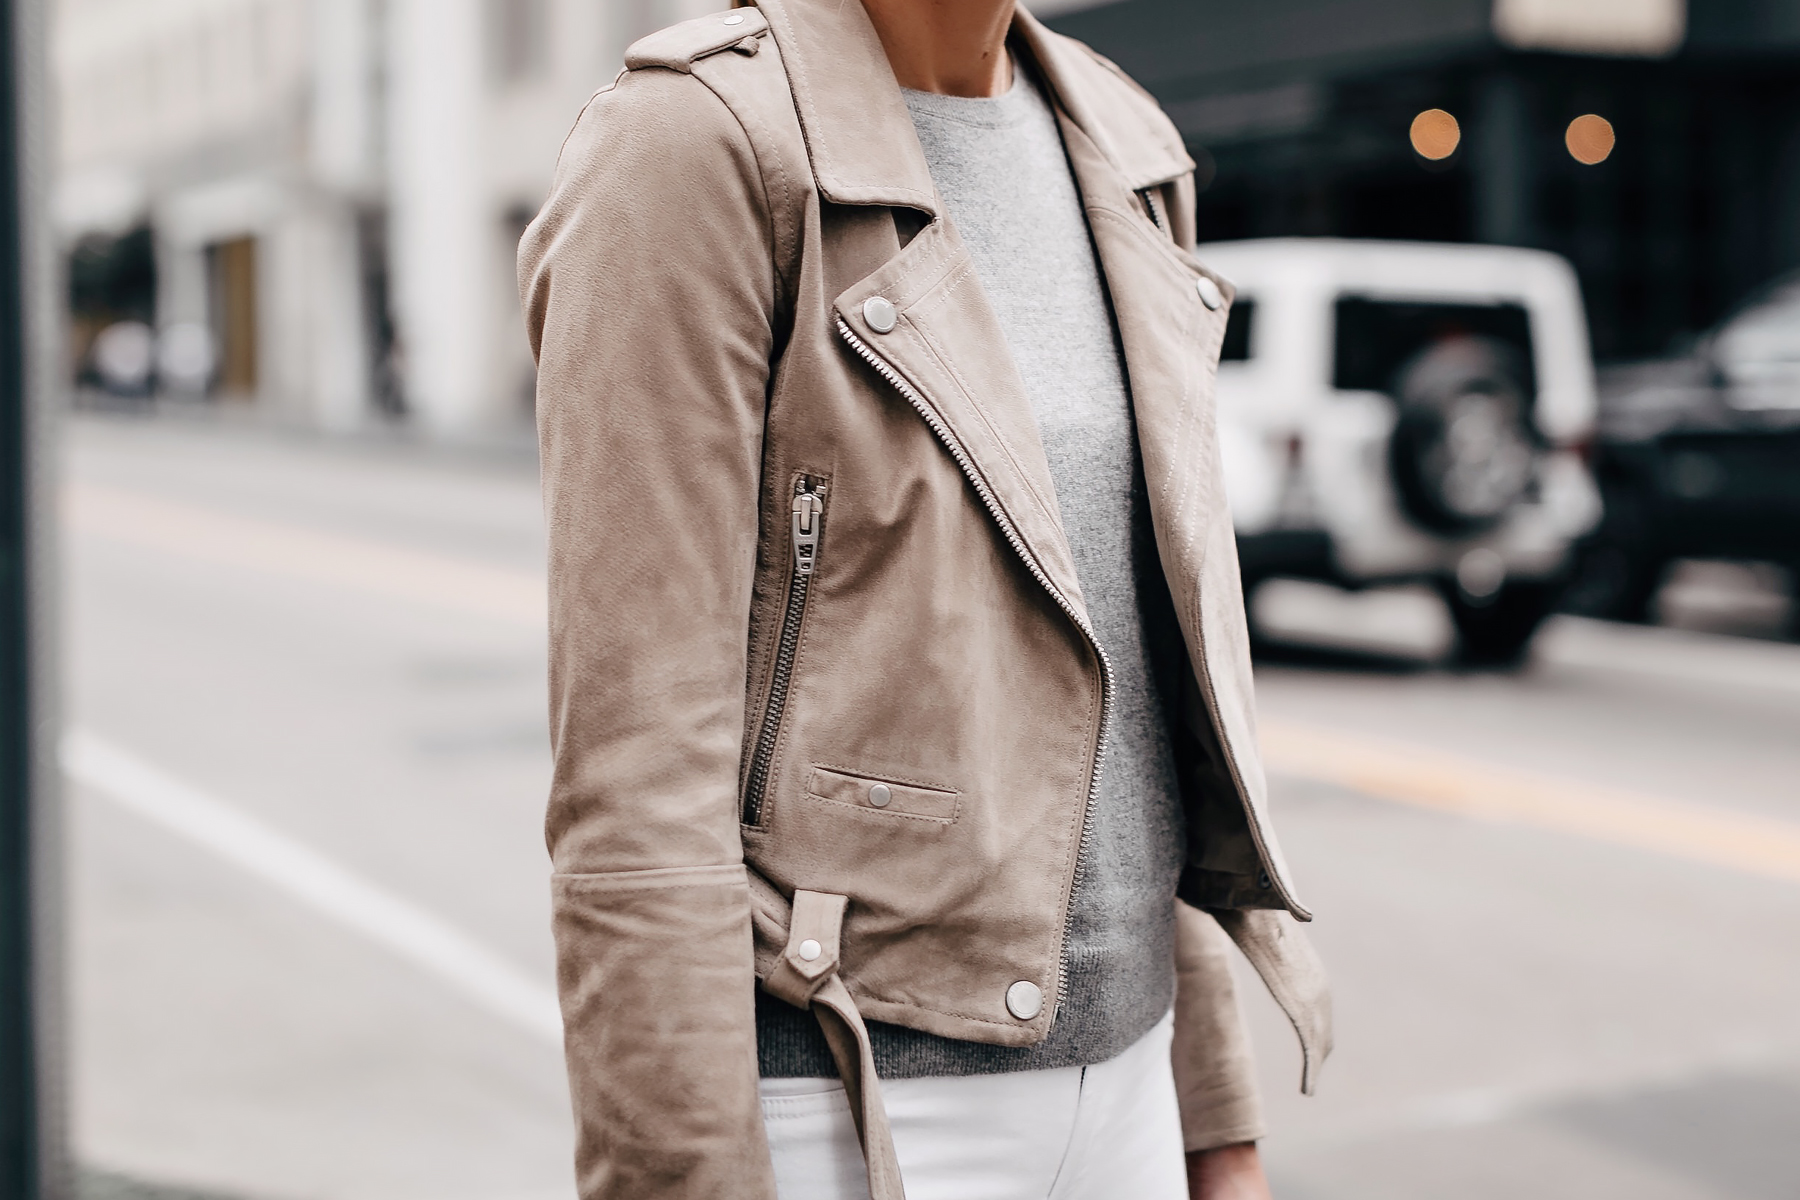 Woman Wearing Blanknyc Suede Moto Jacket Tan Grey Sweater Fashion Jackson San Diego Fashion Blogger Street Style